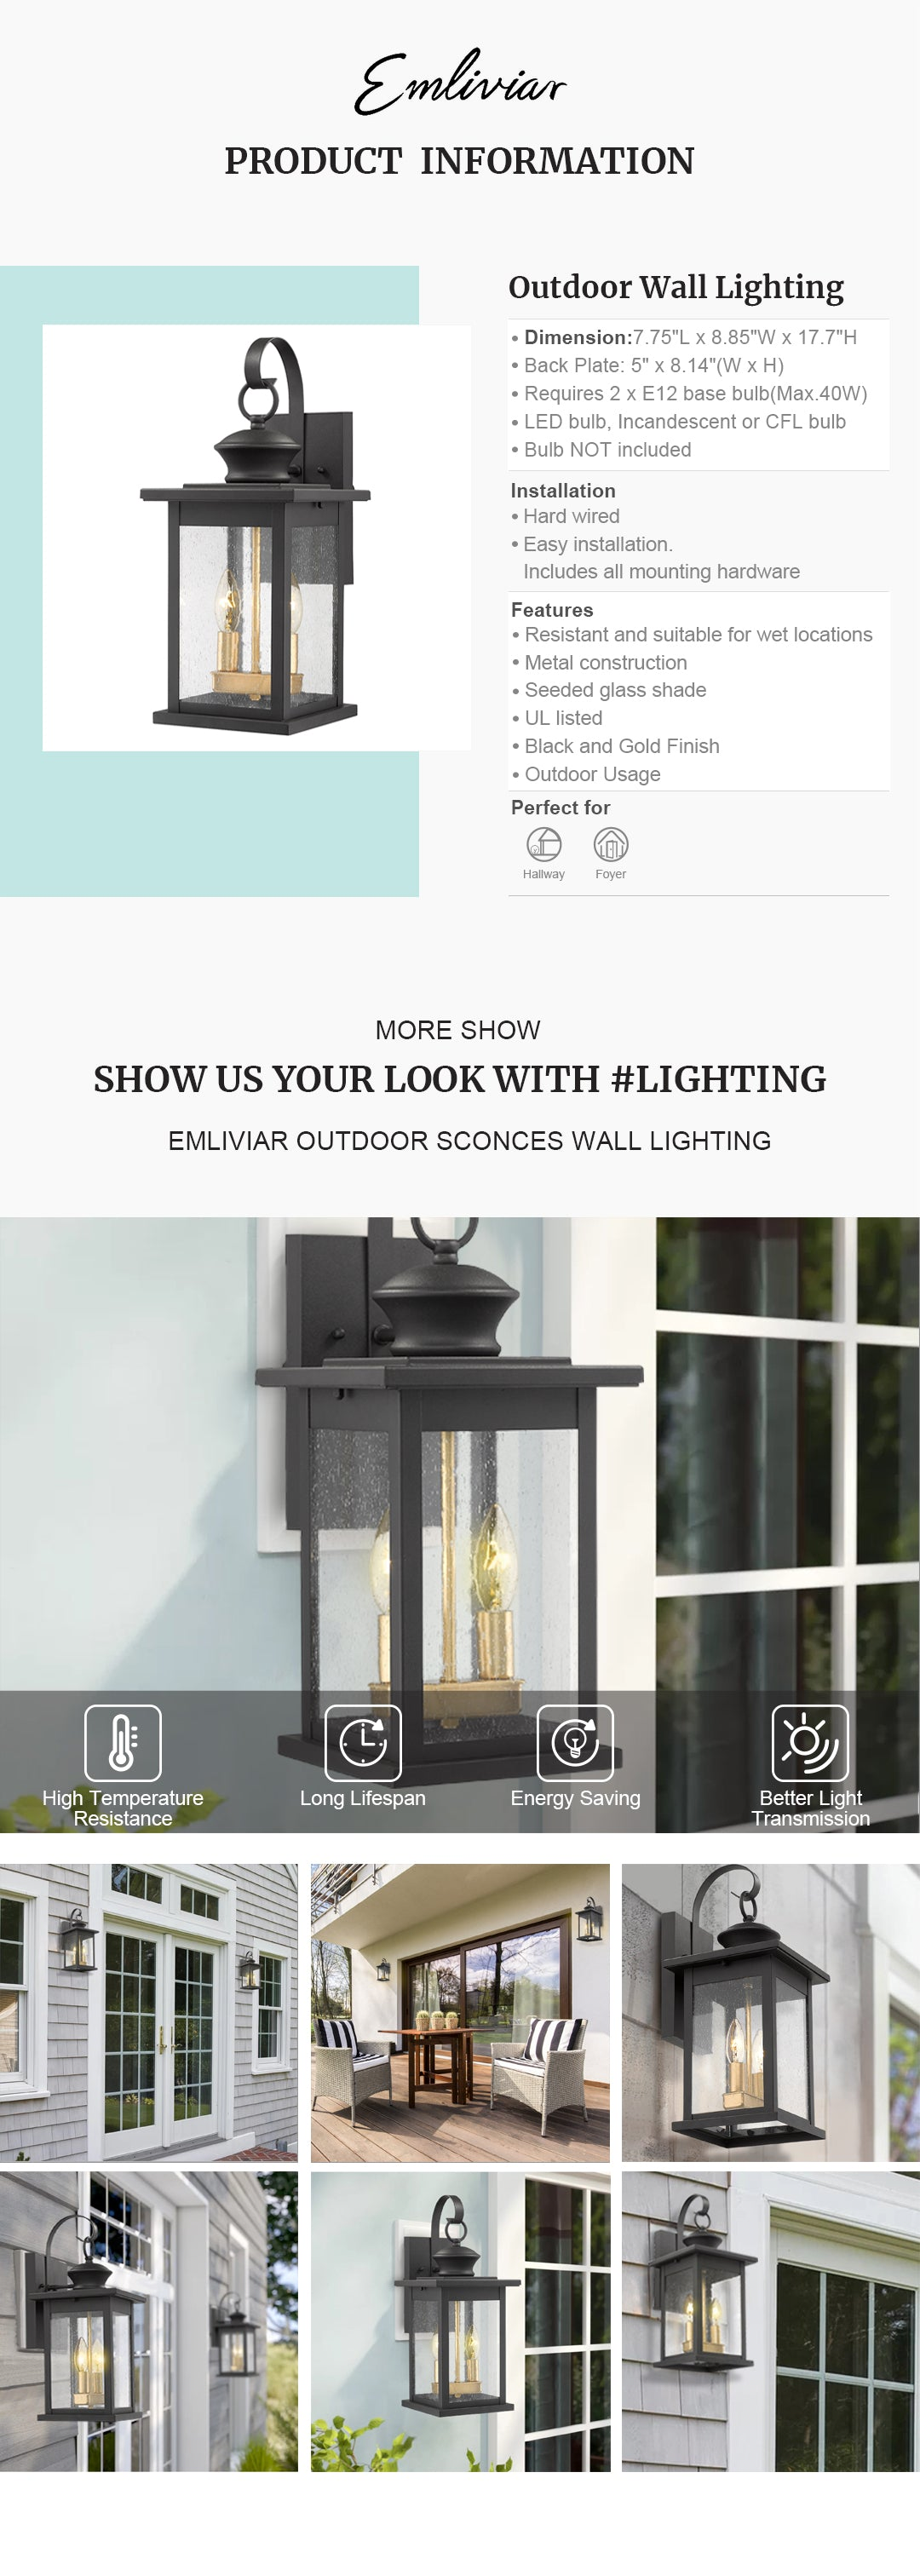 """Weather resistant and suitable for wet locations, this 2-light outdoor wall lantern features sturdy metal construction and seeded glass shade Easy installation with open bottom to allow for easy bulb replacement. Includes all mounting hardware Hard wired. Requires 2 x E12 base bulb(Max.40W). Bulb NOT included. Compatible with LED bulb, Incandescent or CFL bulb UL Listed with a one-year warranty. This outdoor wall light is perfect for porch, garage, hallway and entryway. Dimension: 7.75"""" x 8.85"""" x 17.7""""(L x W x H); Back Plate: 5"""" x 8.14""""(W x H)"""